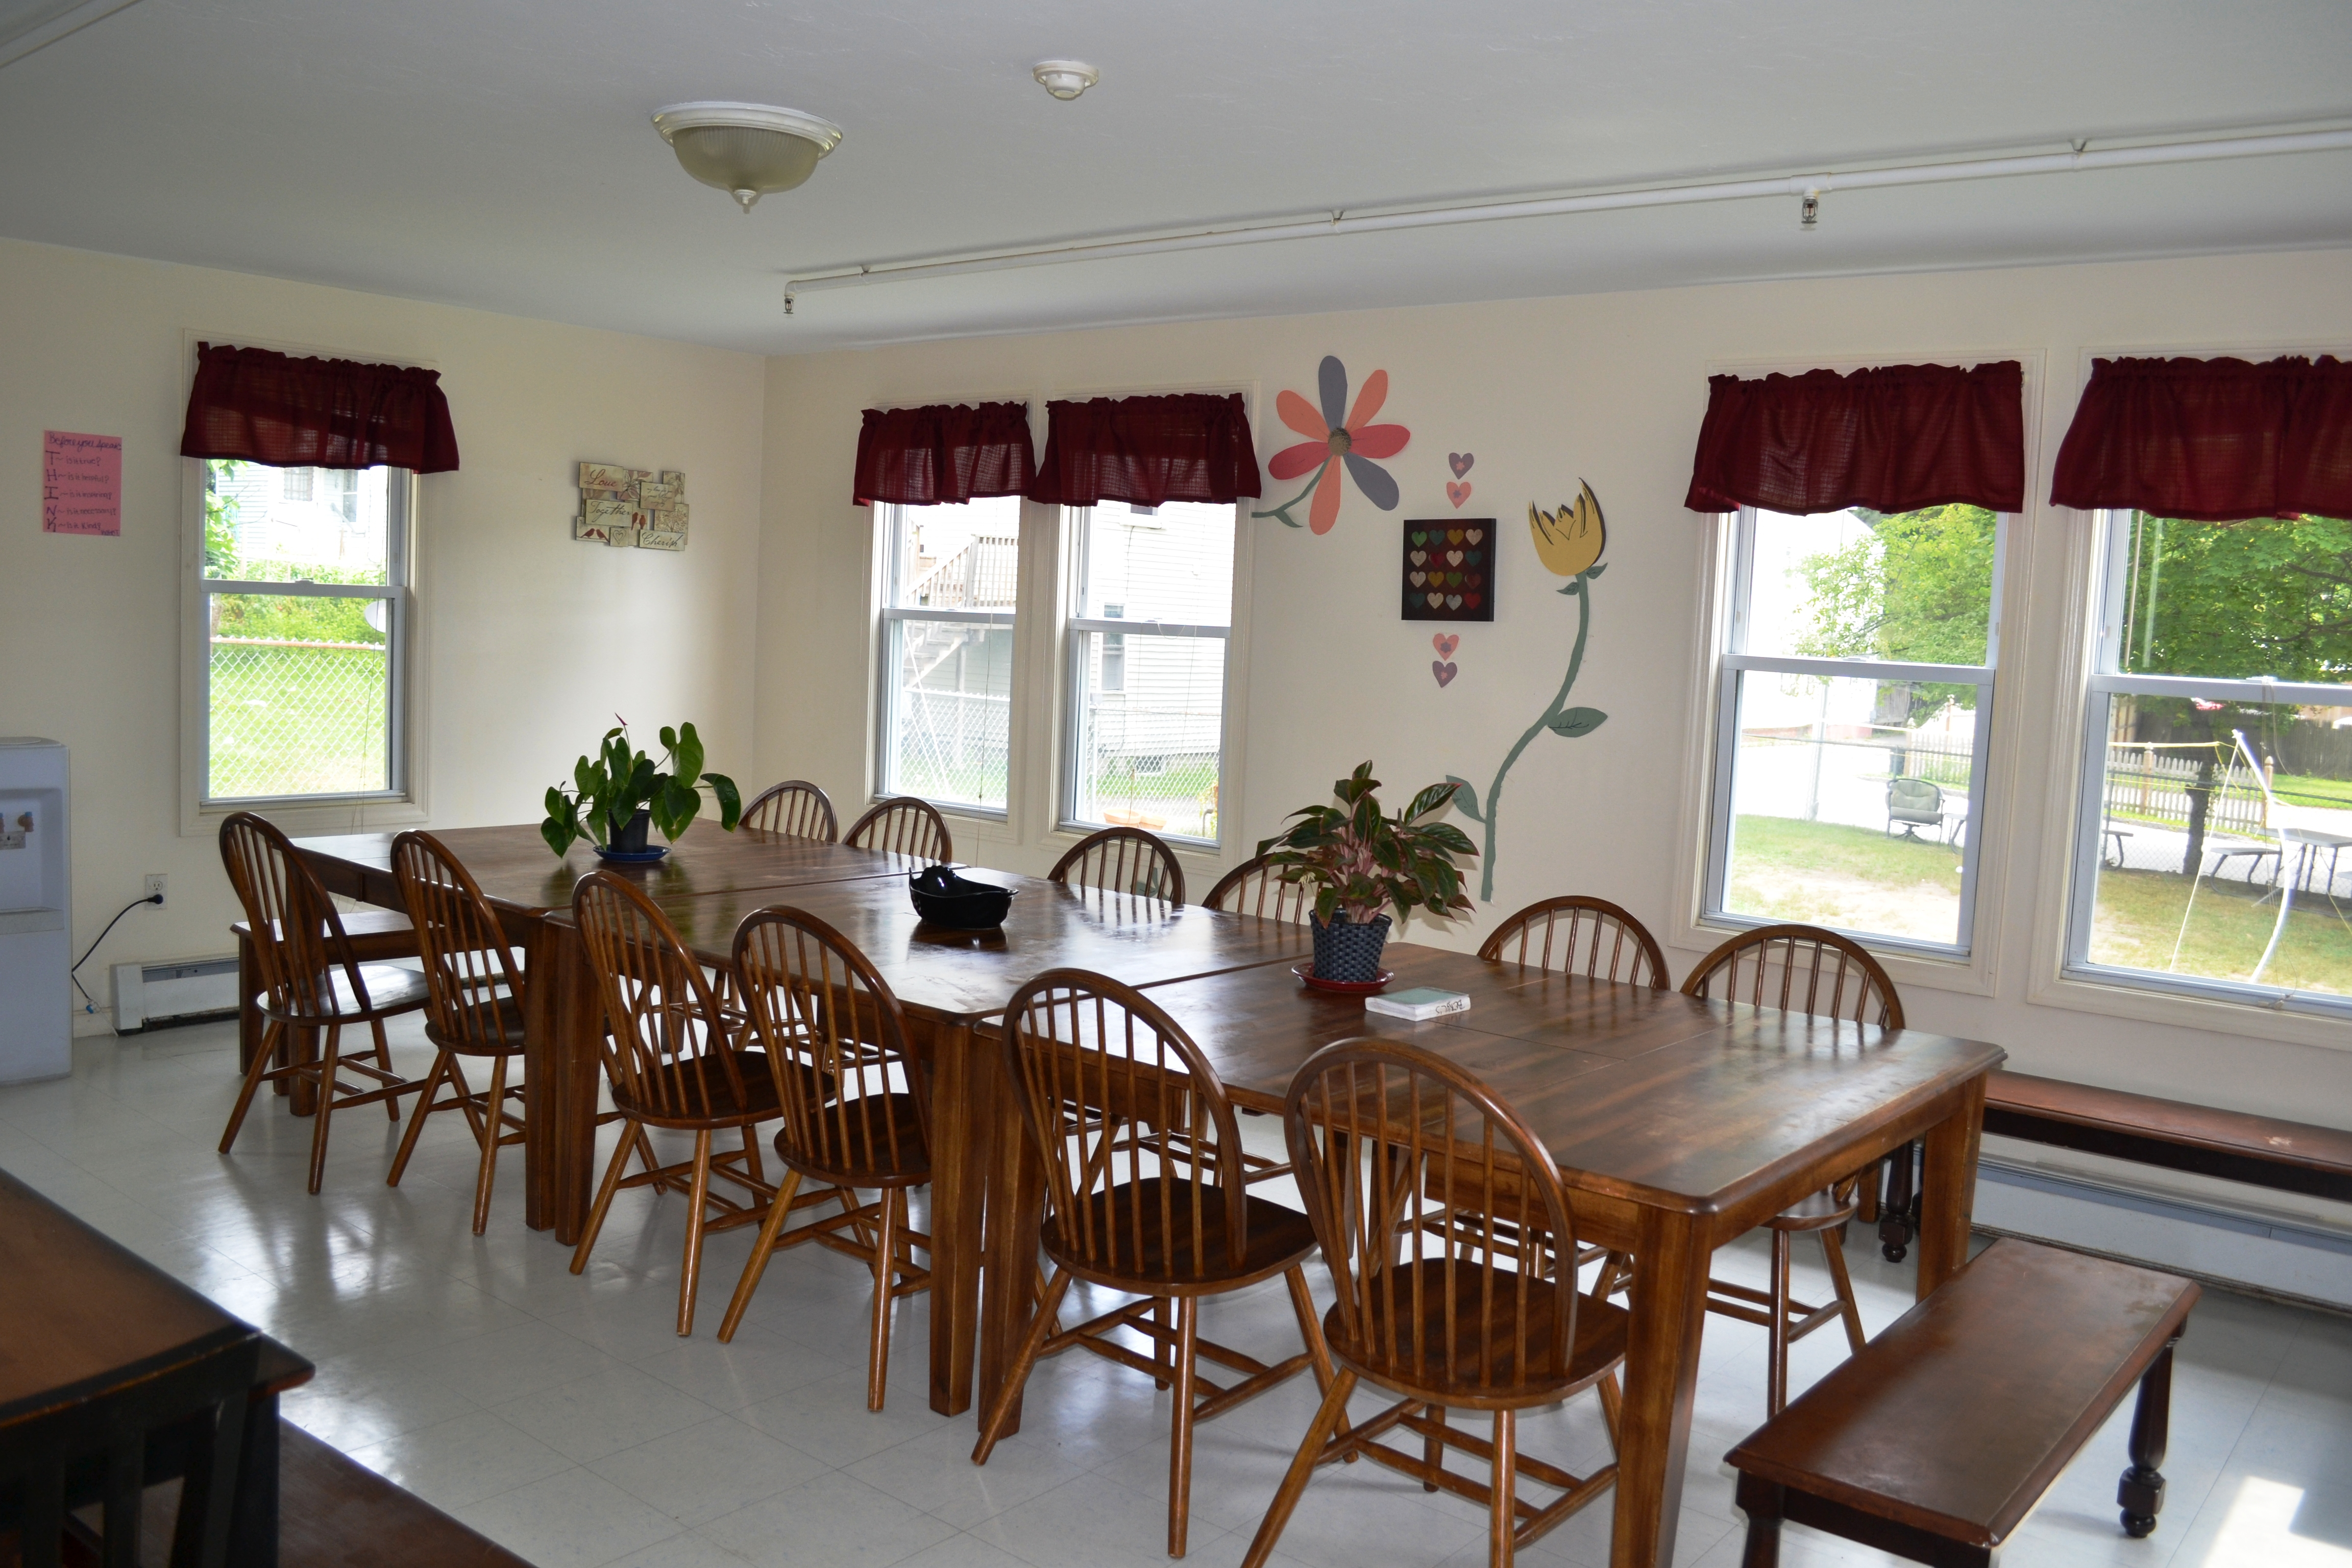 The dining room, with its expansive table, is situated to ensure all have a place at the table for dinner.